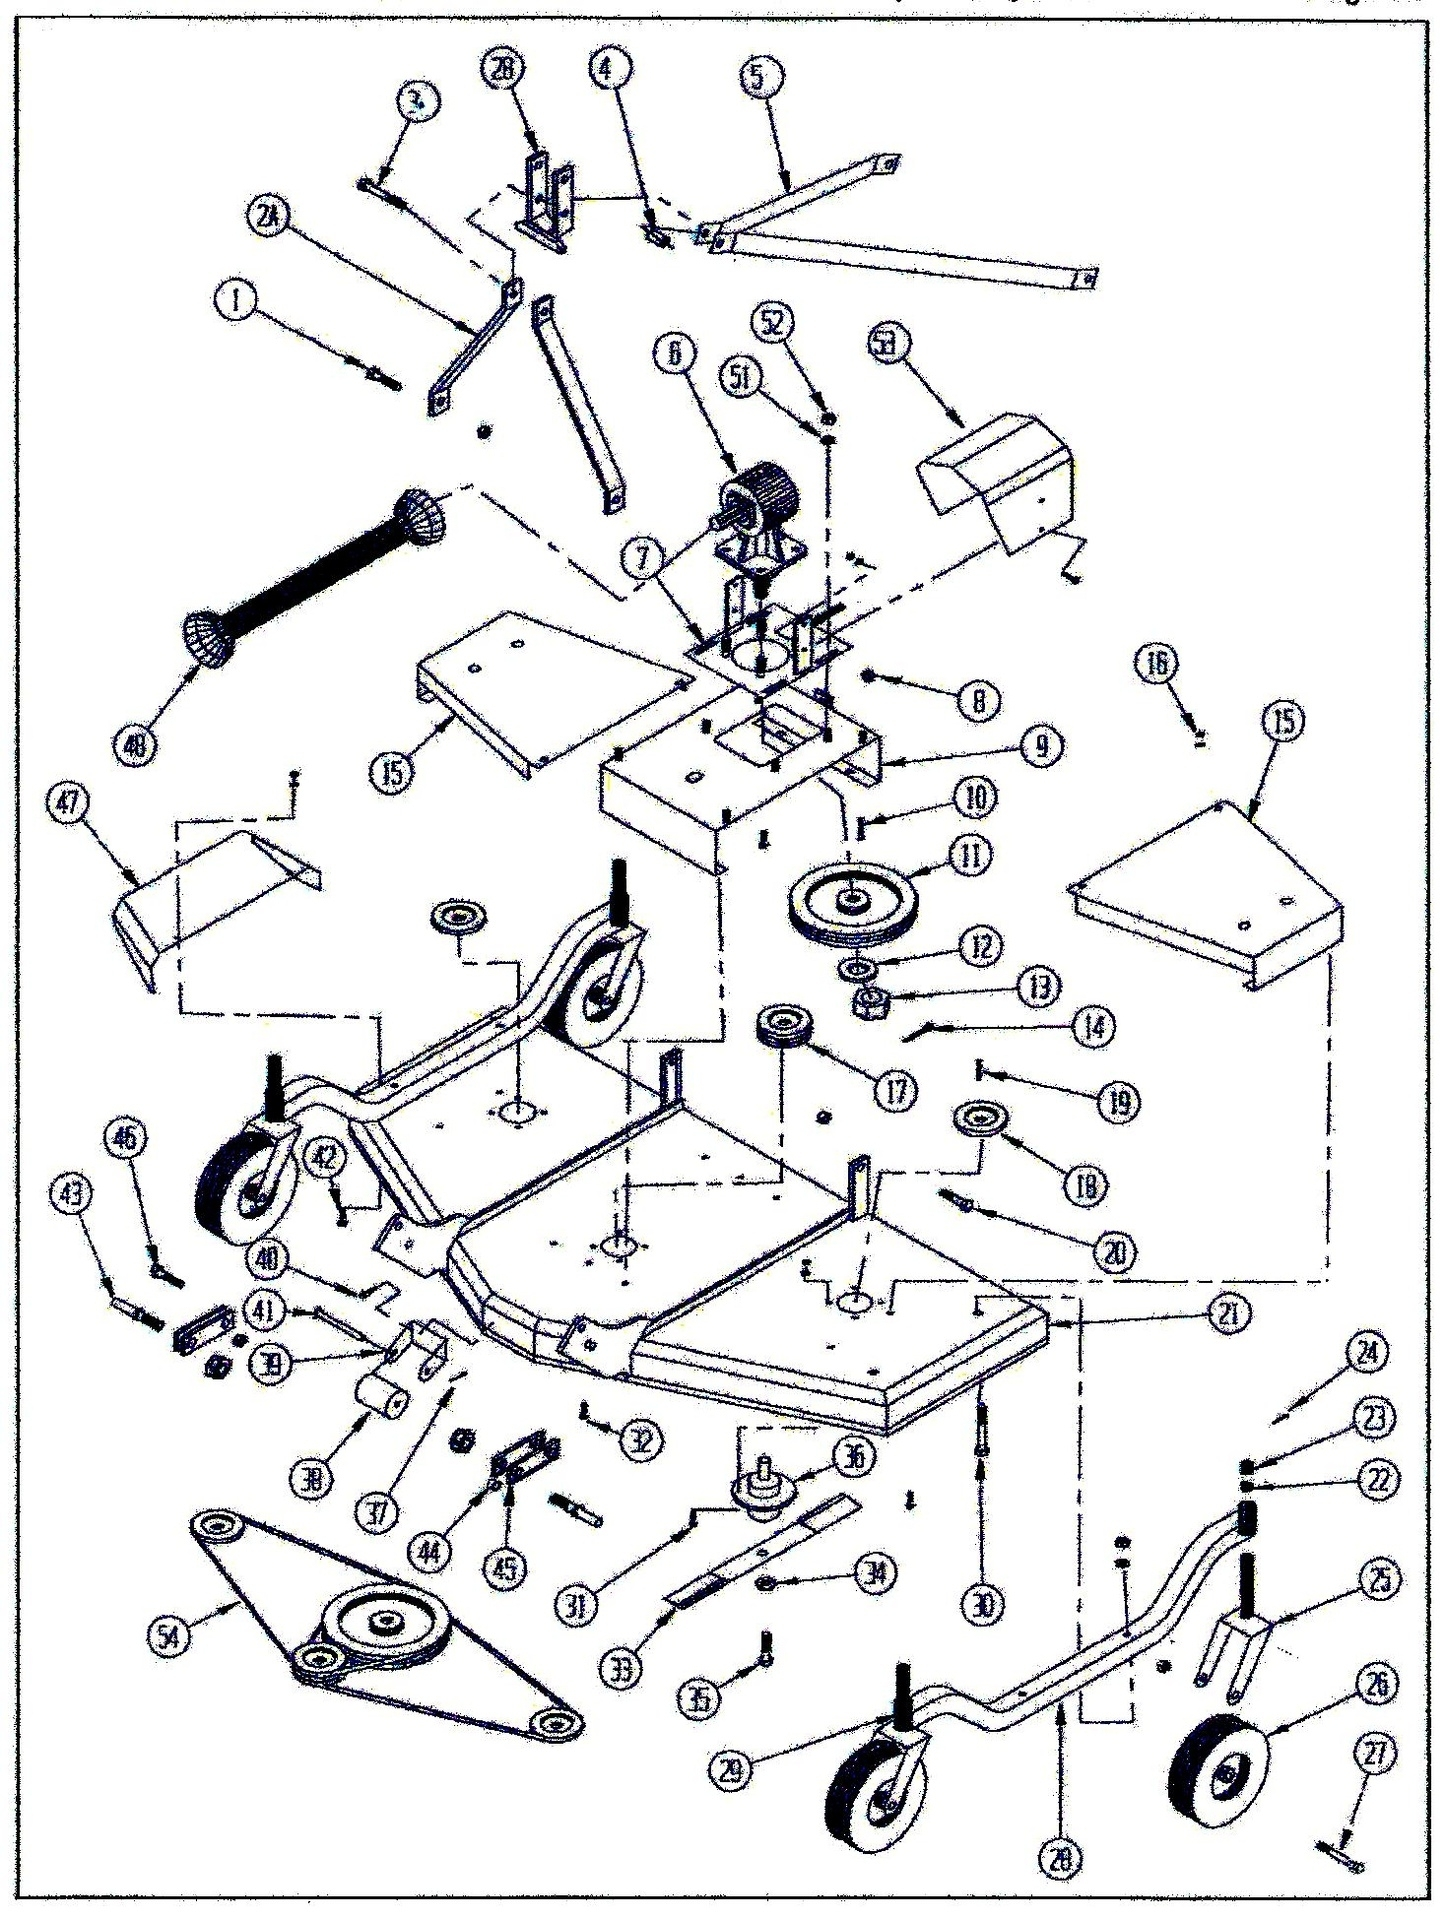 455j6 john deere 160 lawn tractor just installed in addition kioti tractor wiring schematics together with